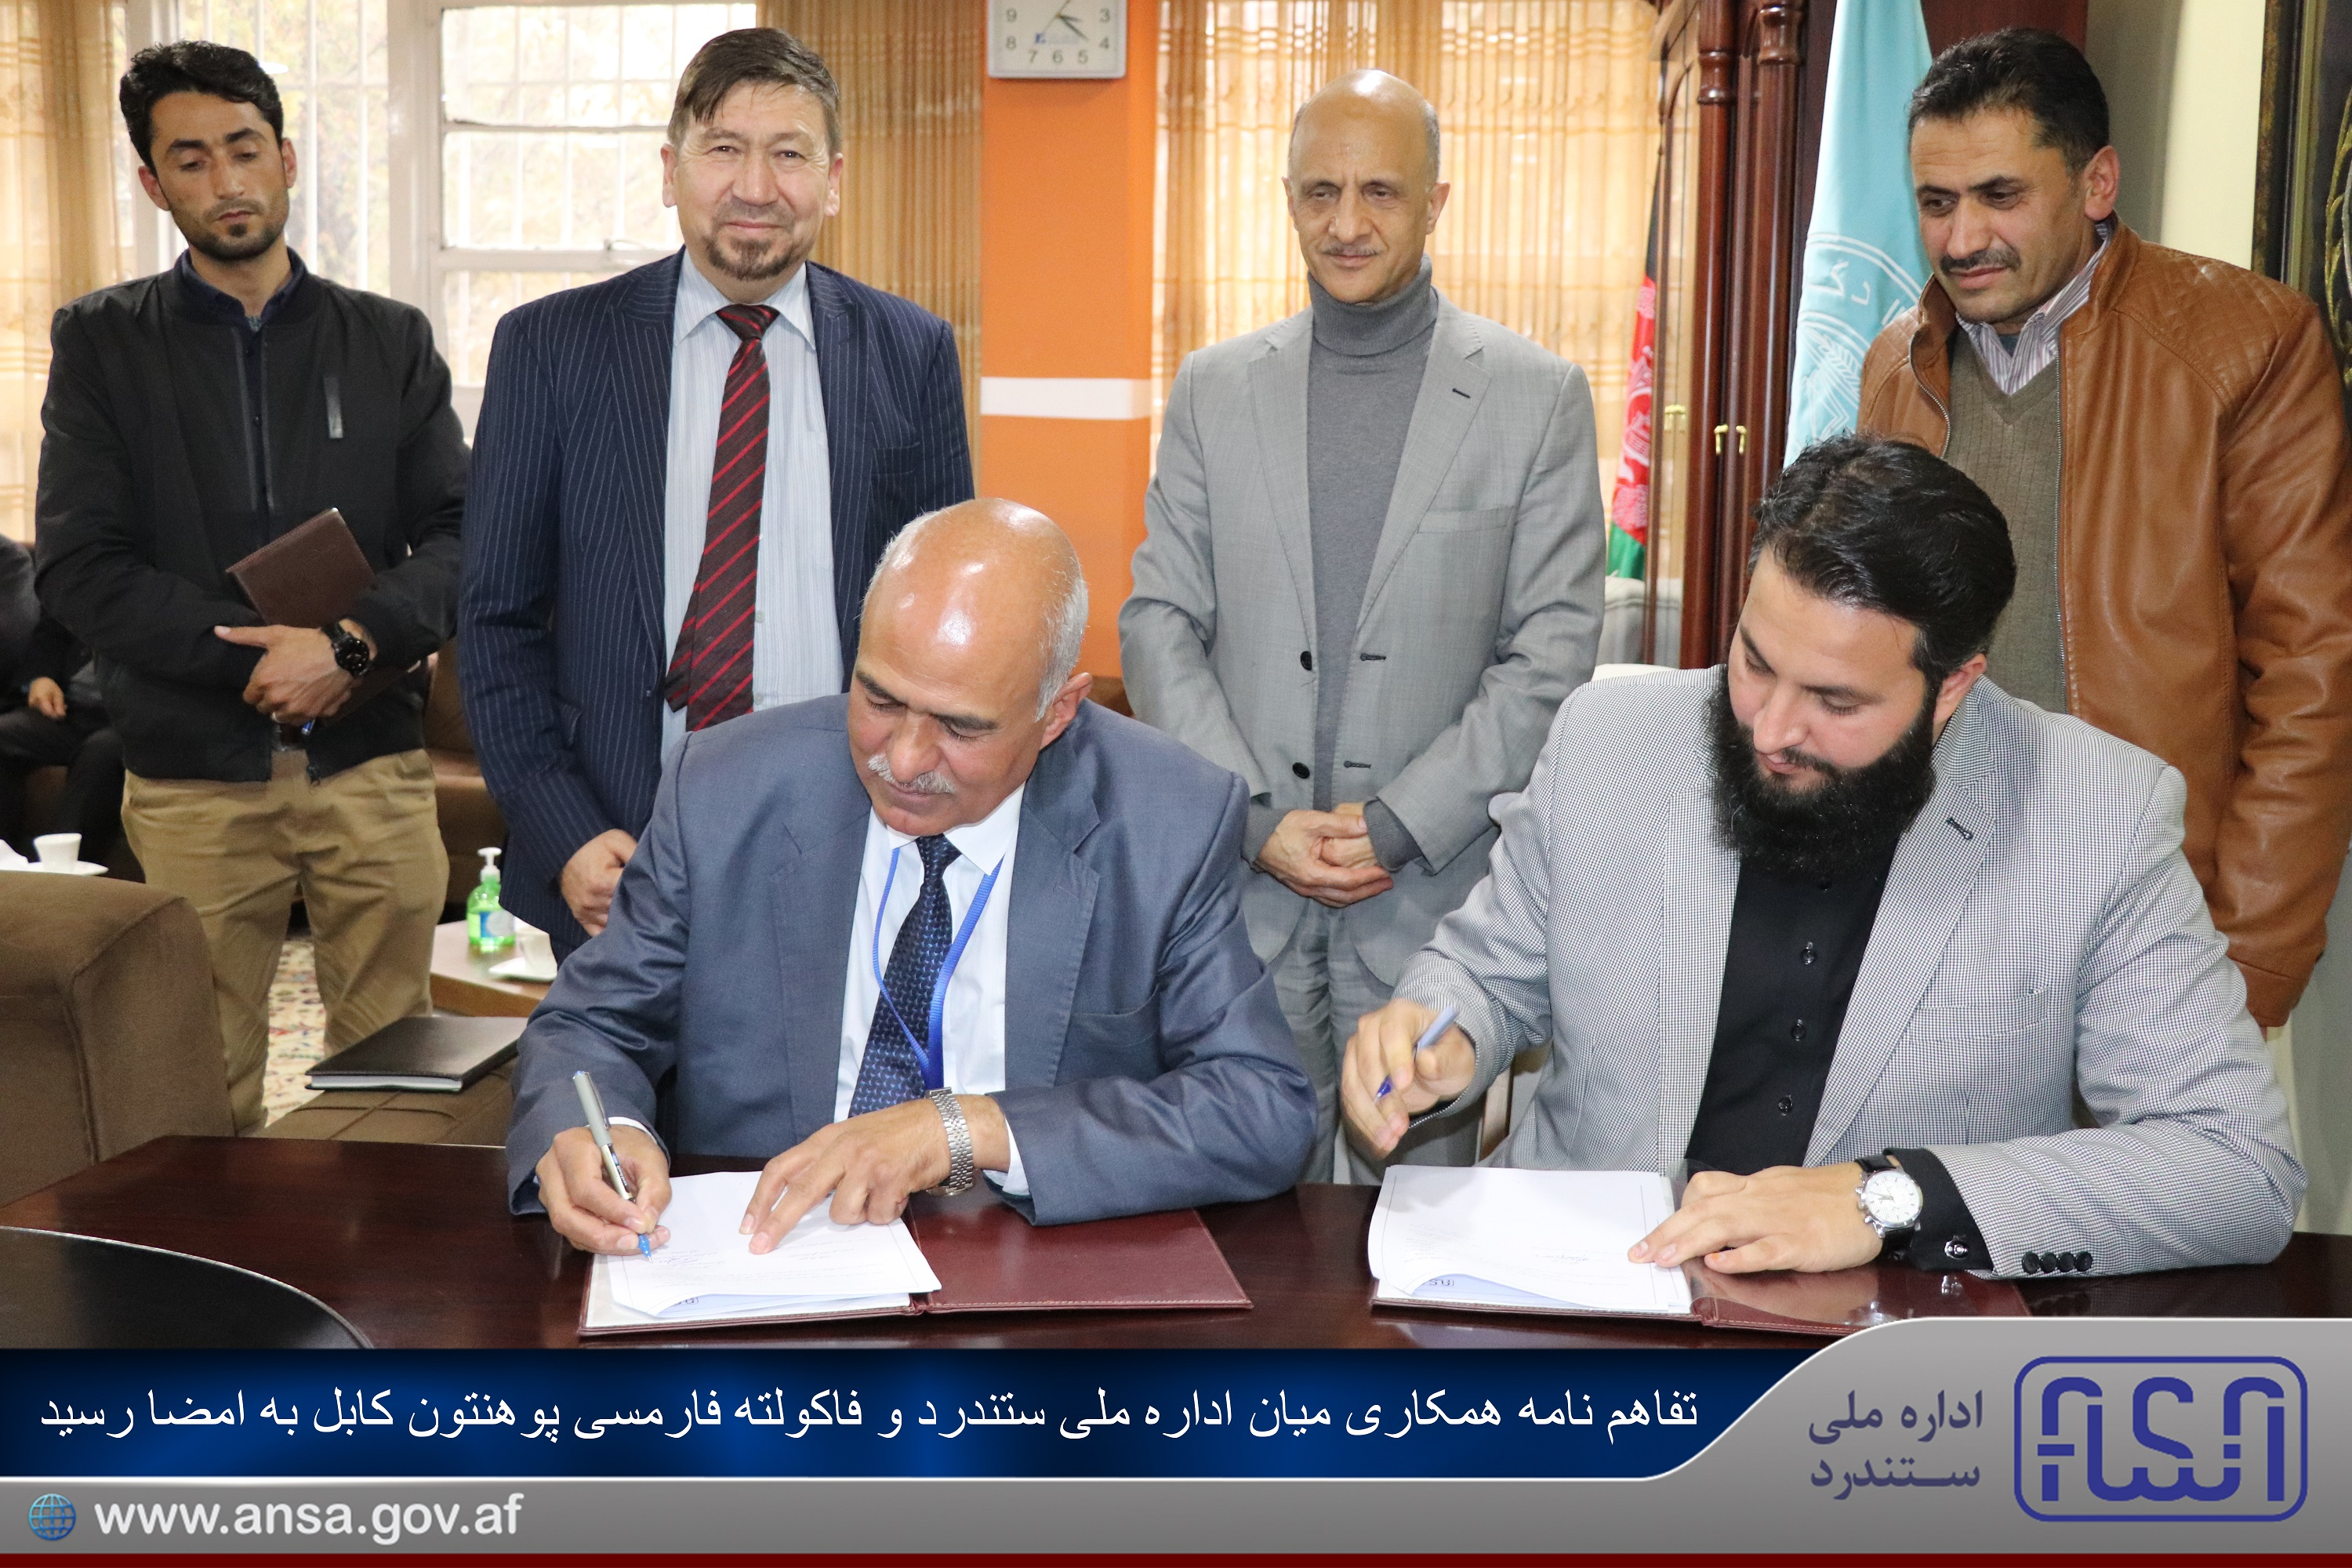 Afghanistan national standards authority signed (MoU) with the faculty of pharmacy, Kabul university.